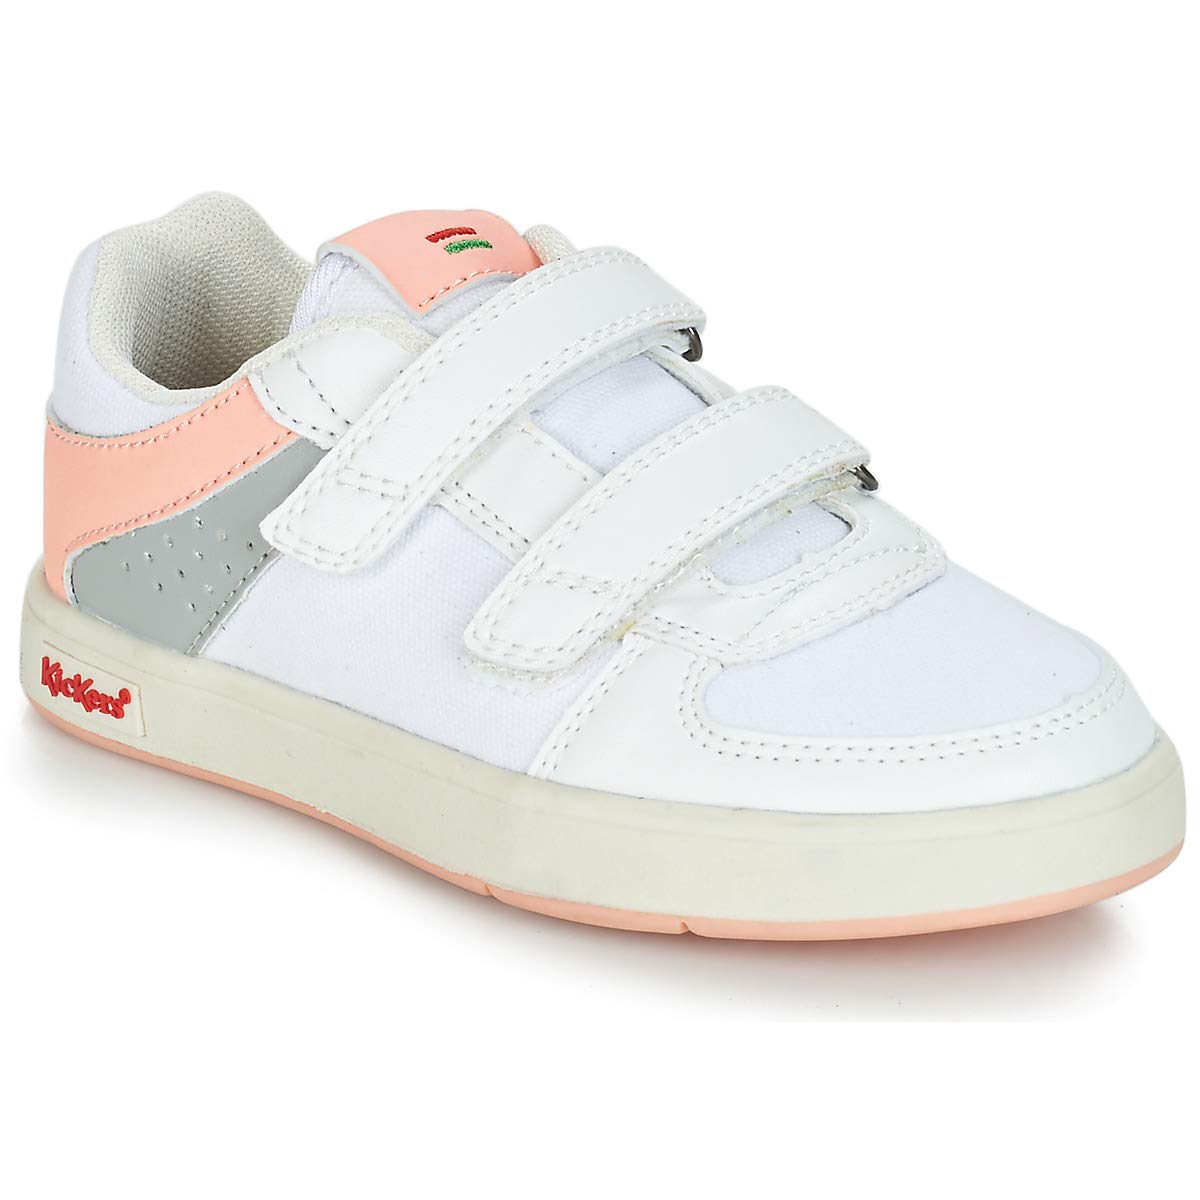 Kickers Gready Low Cdt Baskets Mixte Enfant